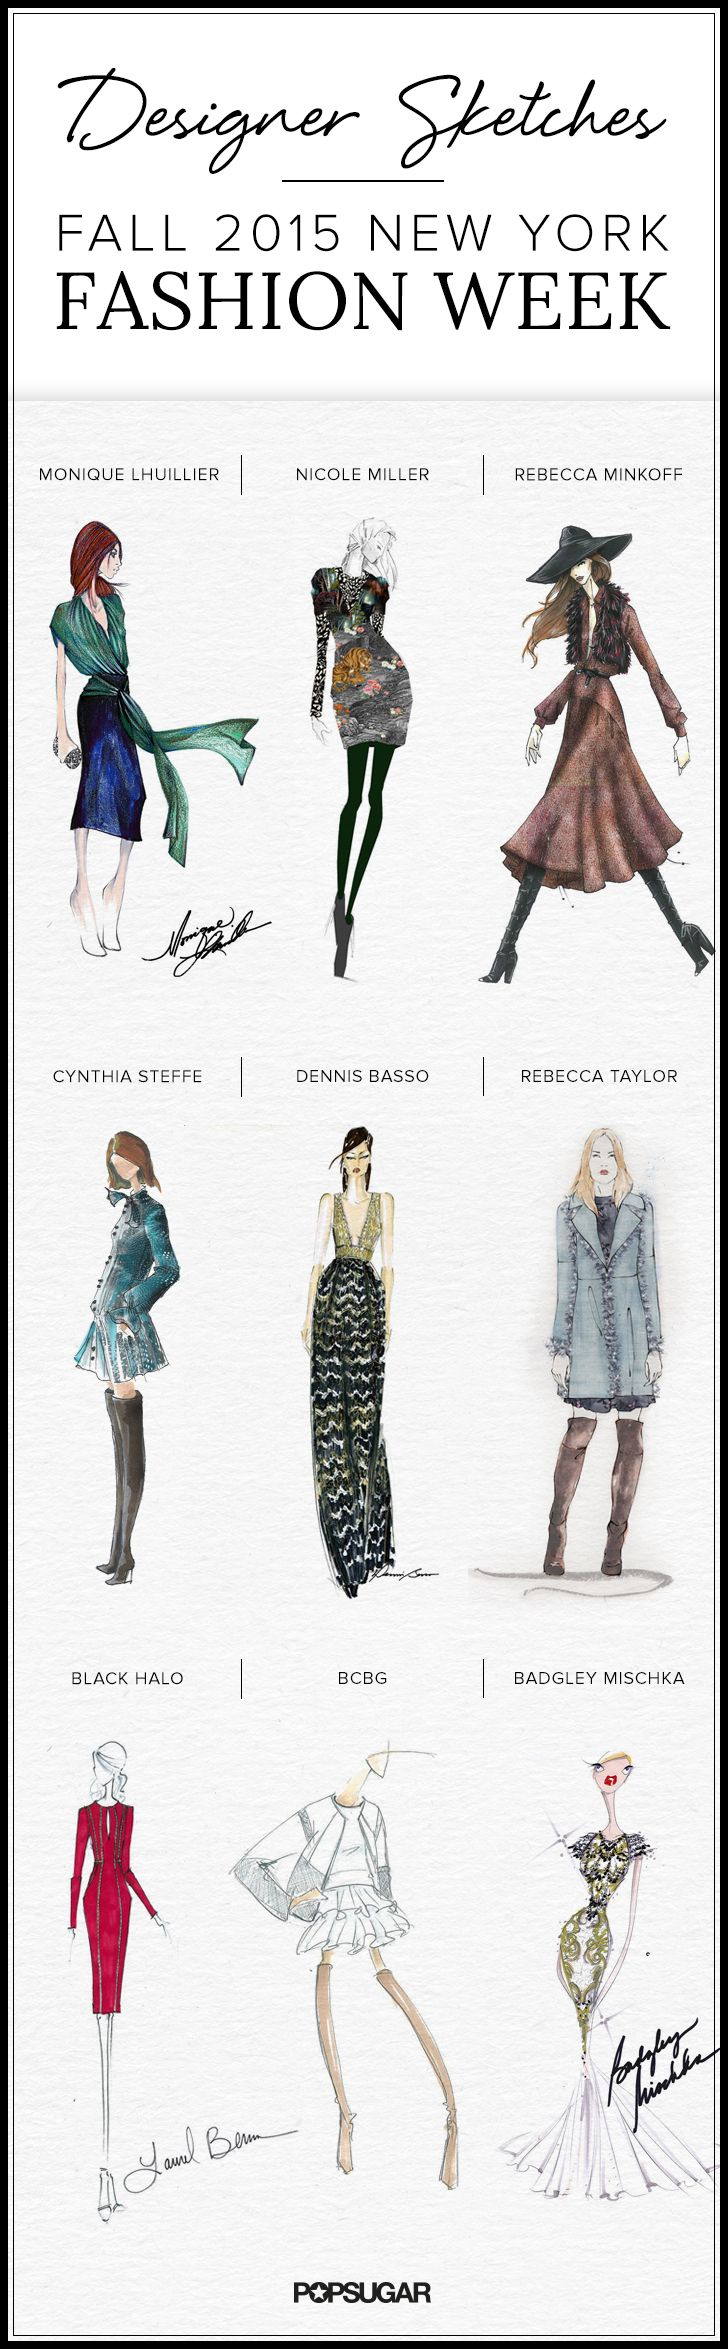 Amazing sketches to preview all the looks coming down the runway at New York Fashion Week!